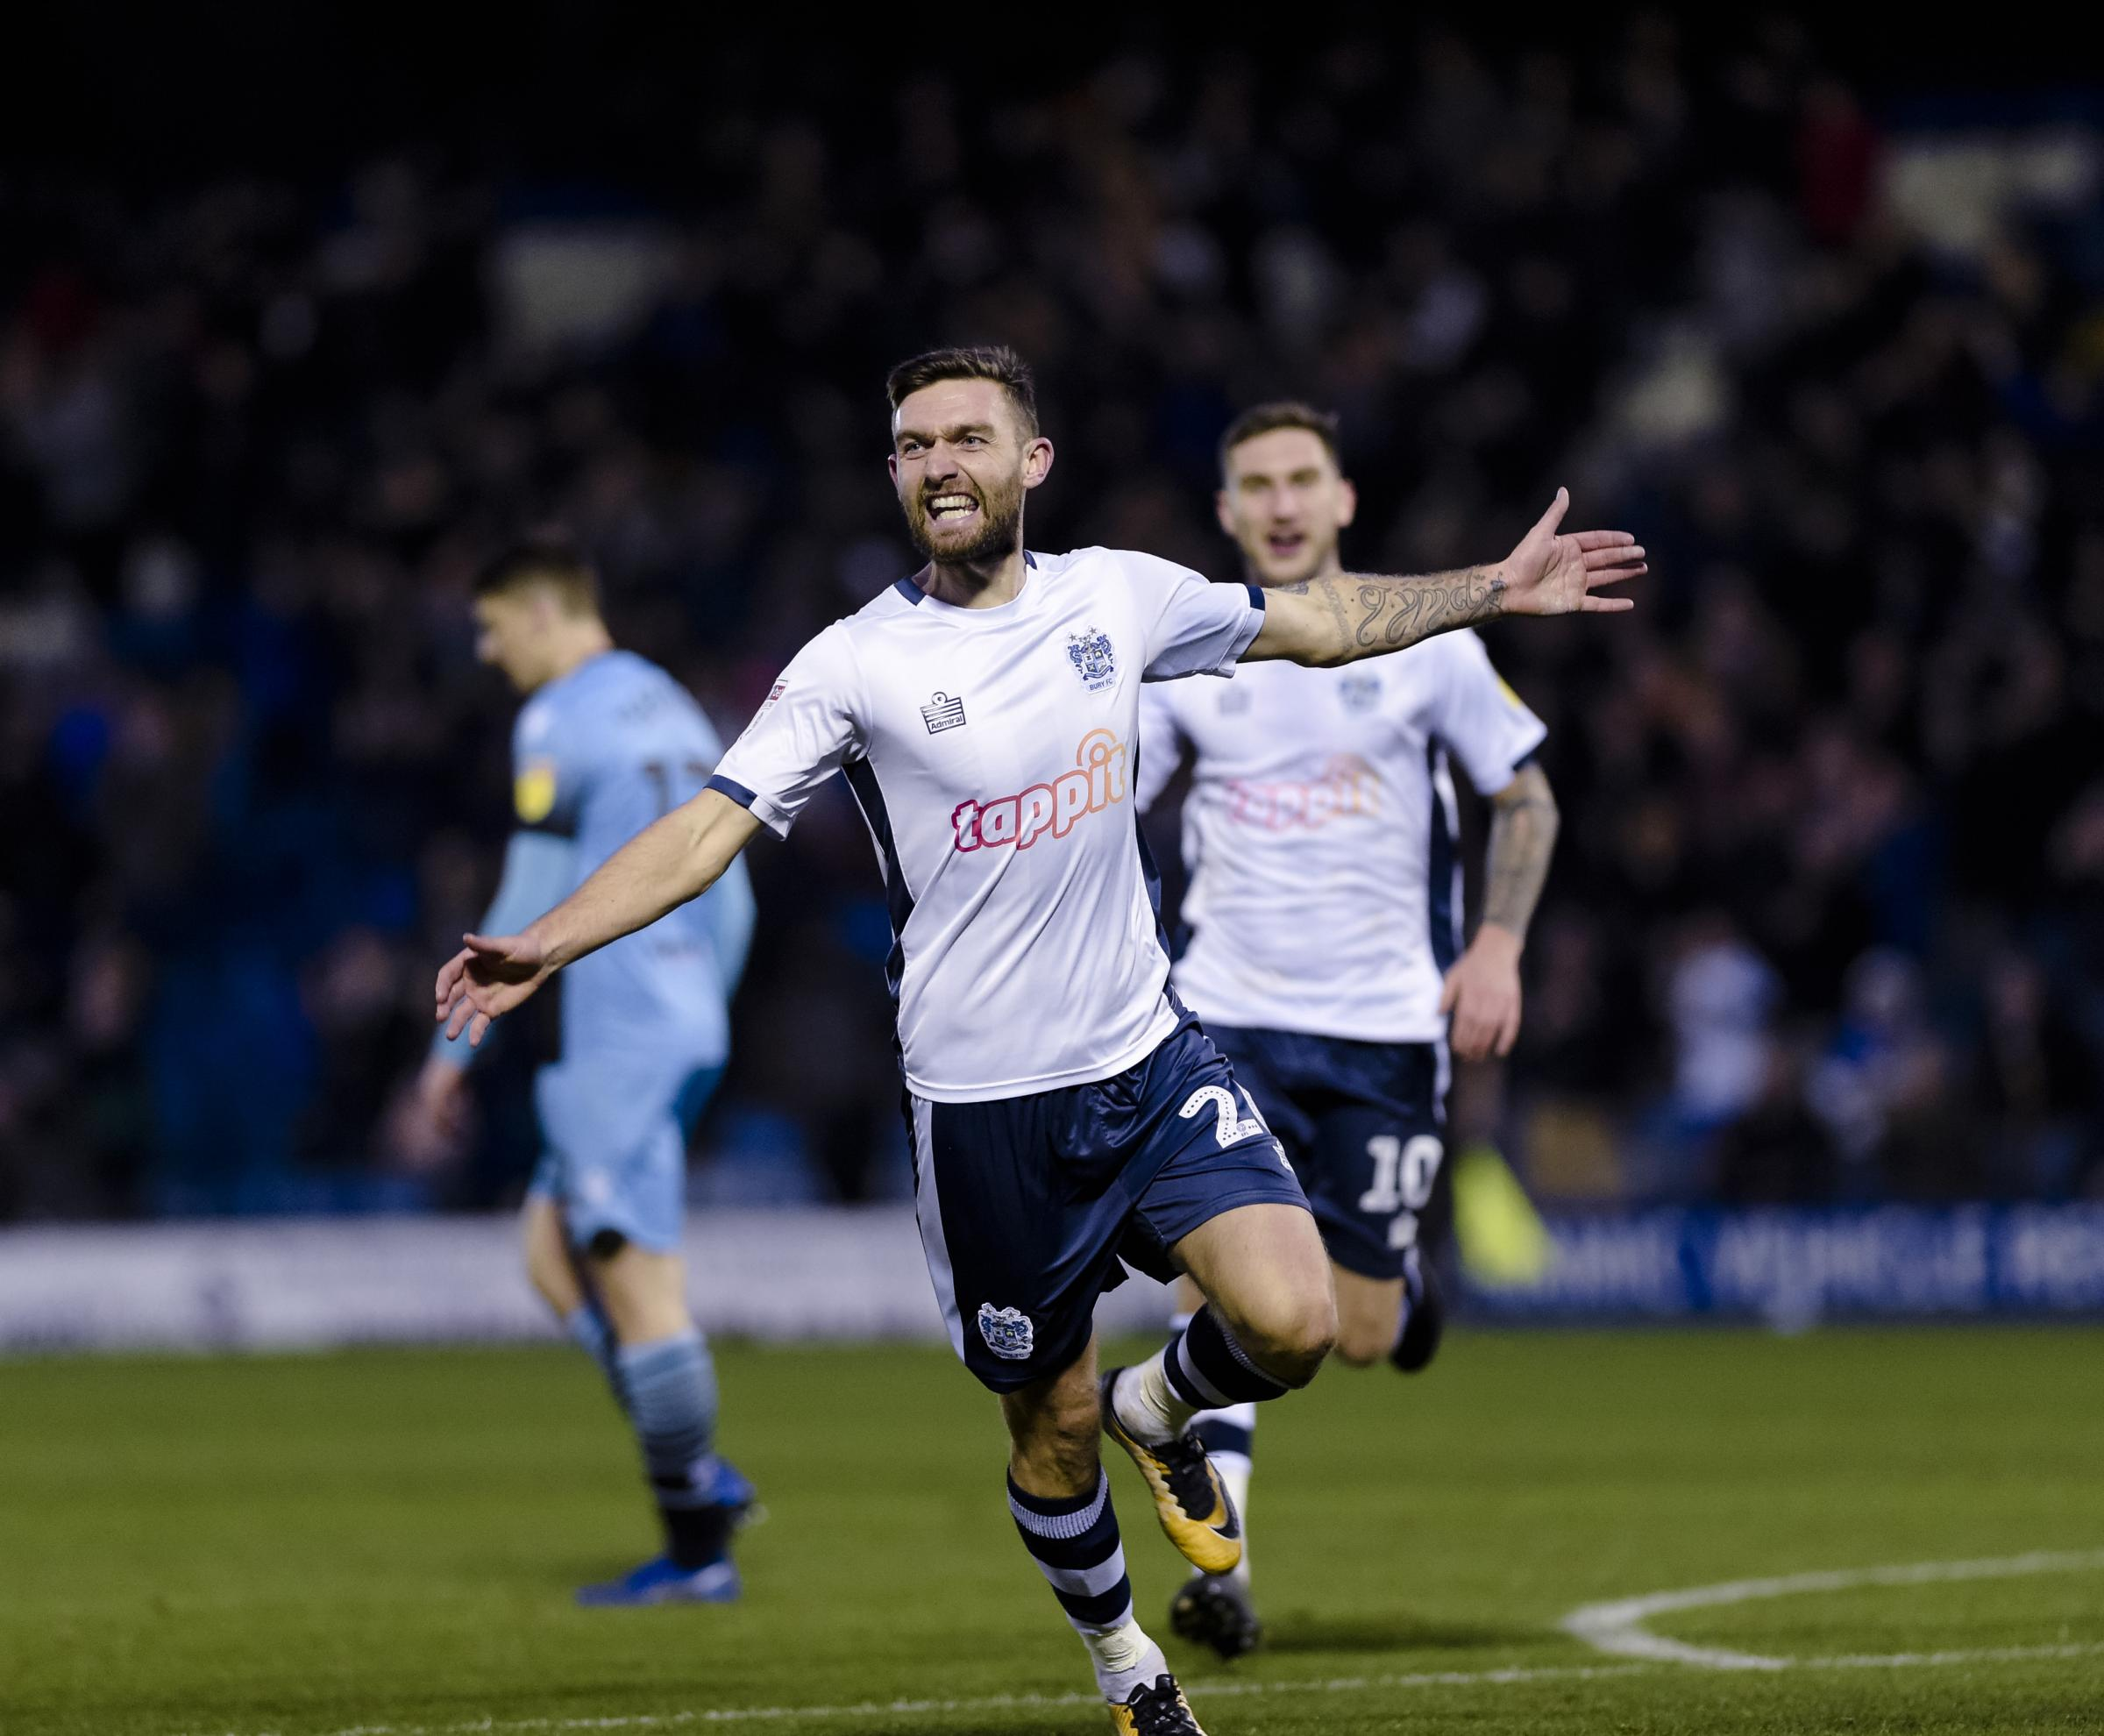 Bury midfielder Jay O'Shea celebrates after opening the scoring during the Sky Bet League 2 match between Bury FC and Stevenage FC at The Energy Check Stadium at Gigg Lane, Bury on Saturday 17th November 2018. Credit: Andy Whitehead..Self-billing appl